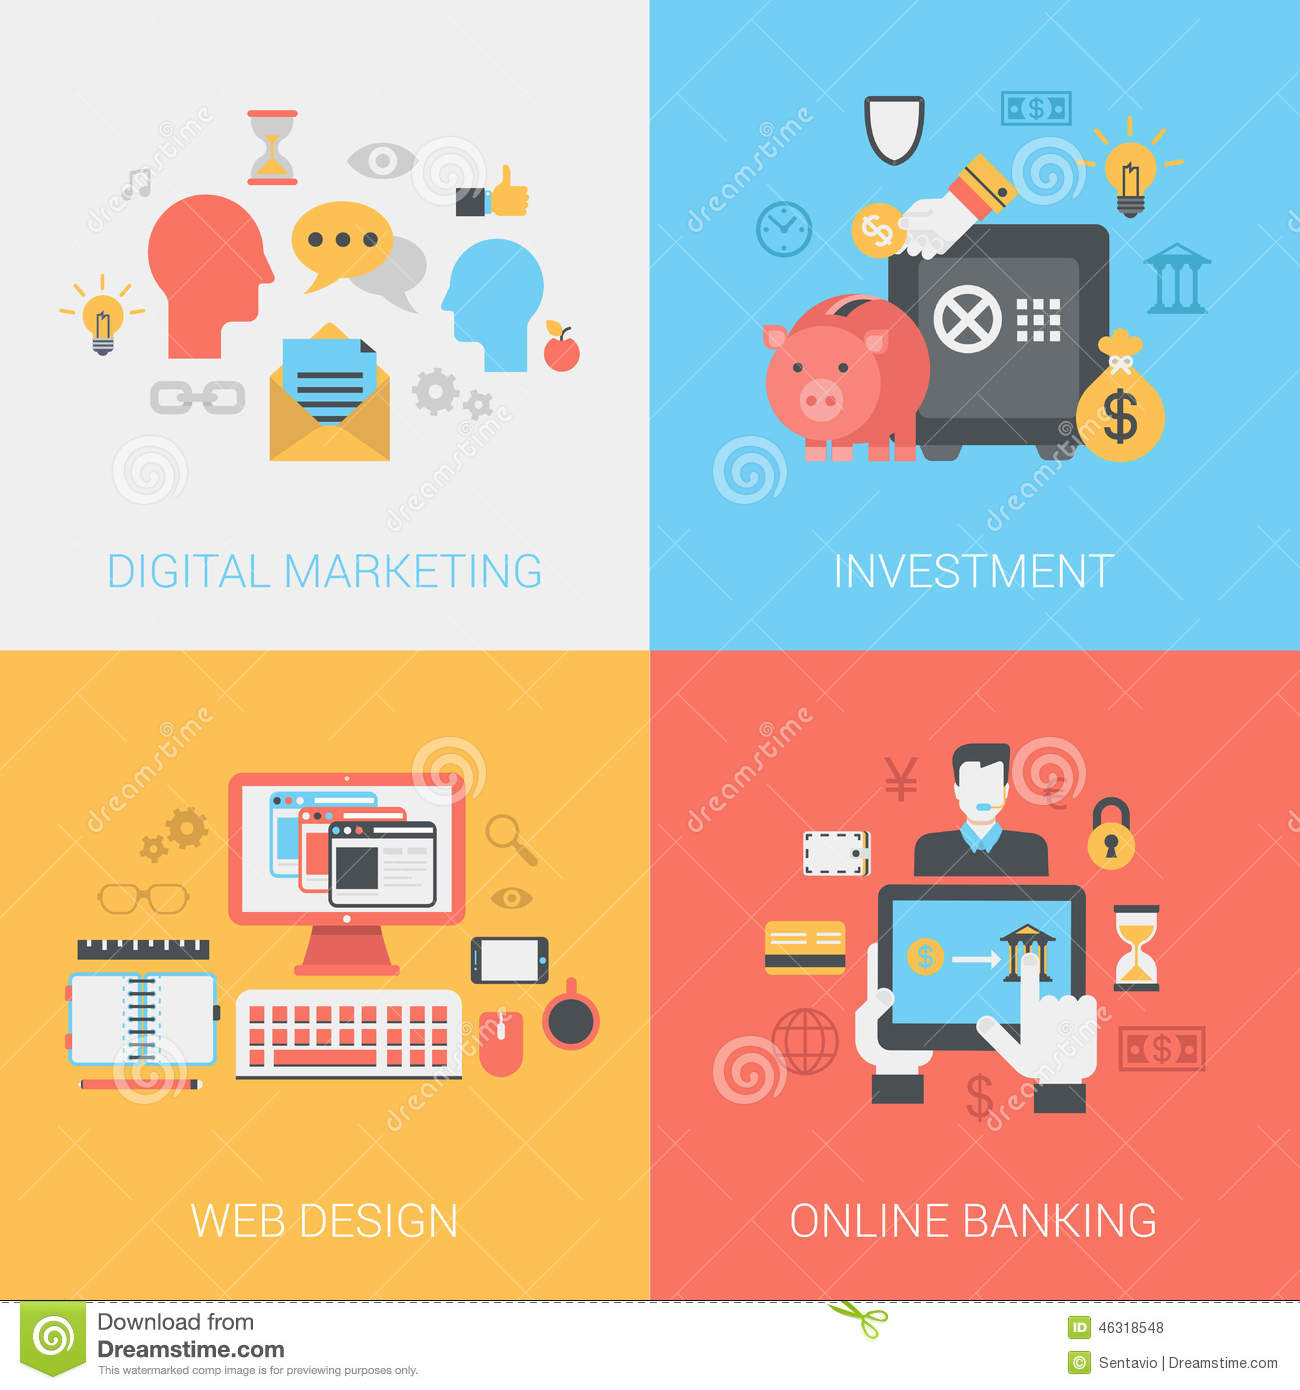 Digital marketing investments web design online banking Create a blueprint online